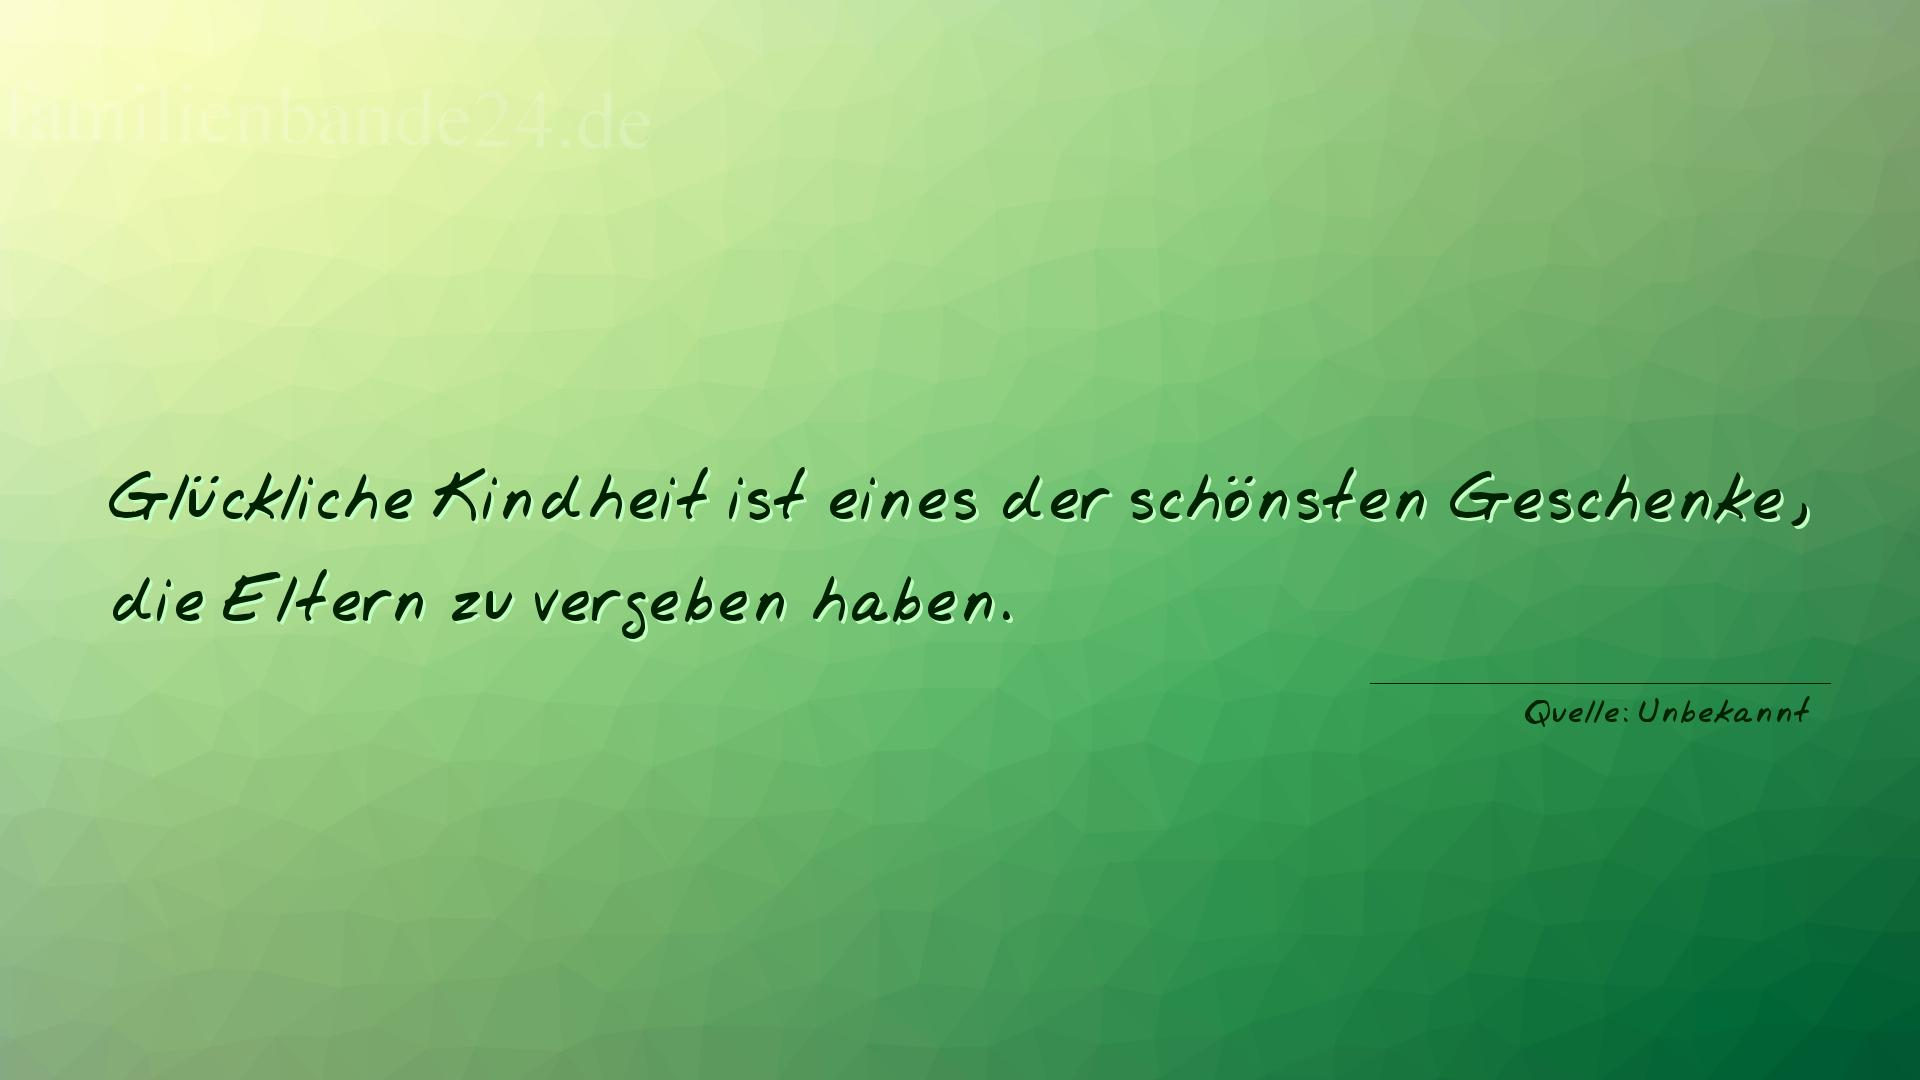 Familienspruch Nr. 366, Quelle